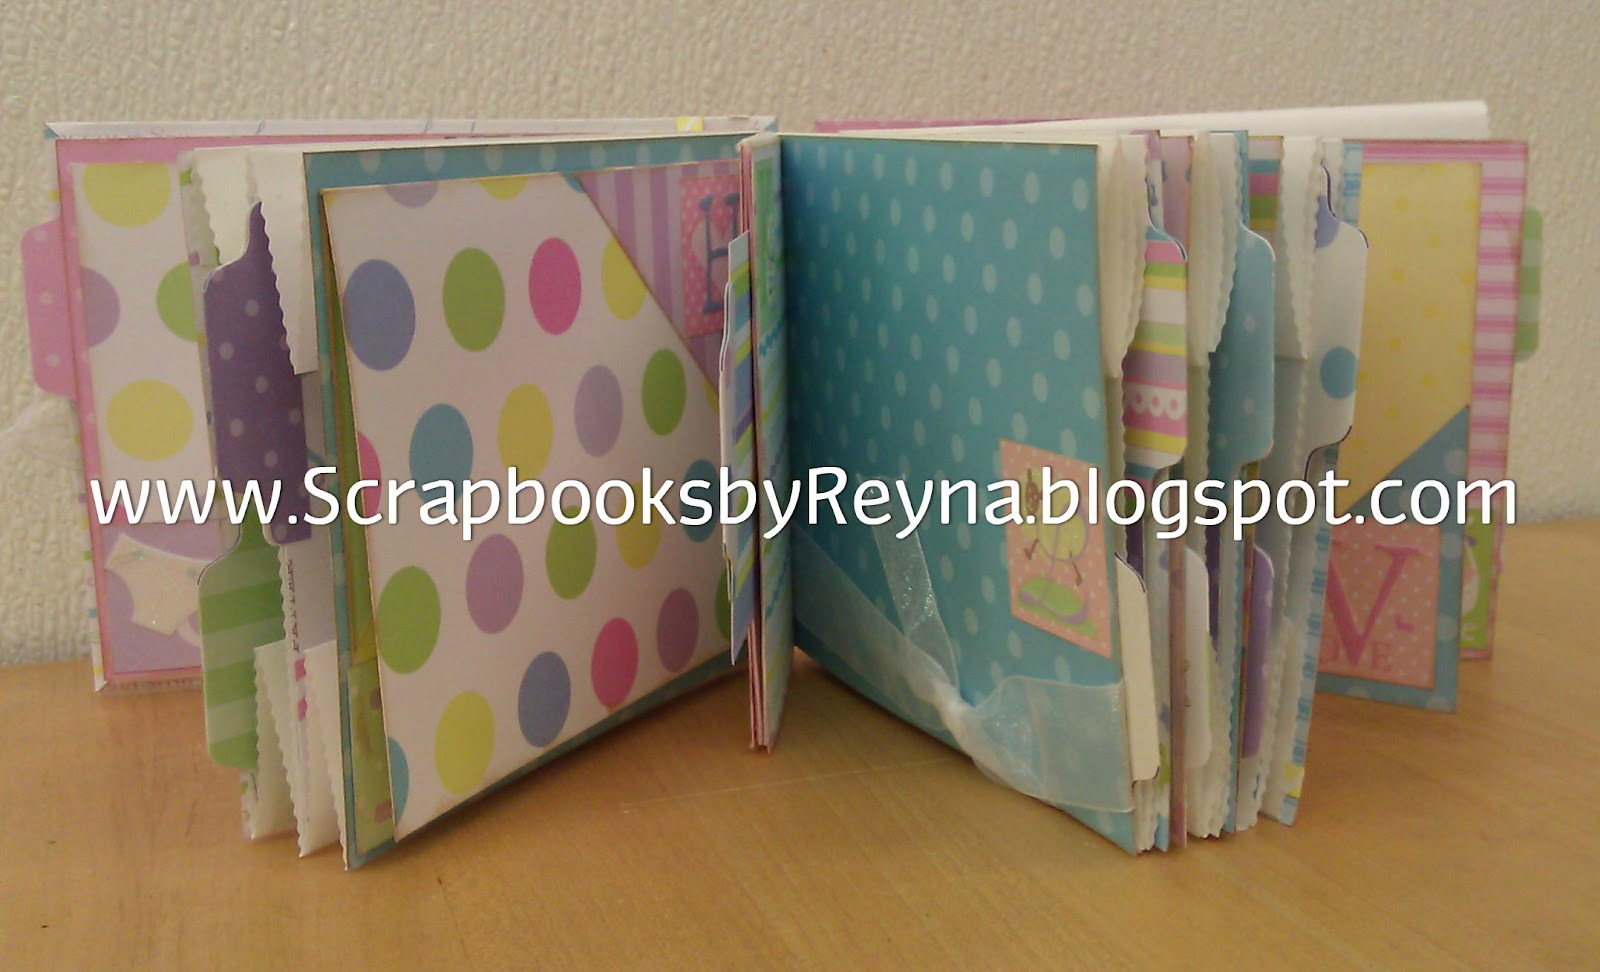 Paper bag scrapbook - I Have A Variety Of Paper Bags Listed On My Blog Click On The Label Below Paper Bag Albums To View Additional Albums